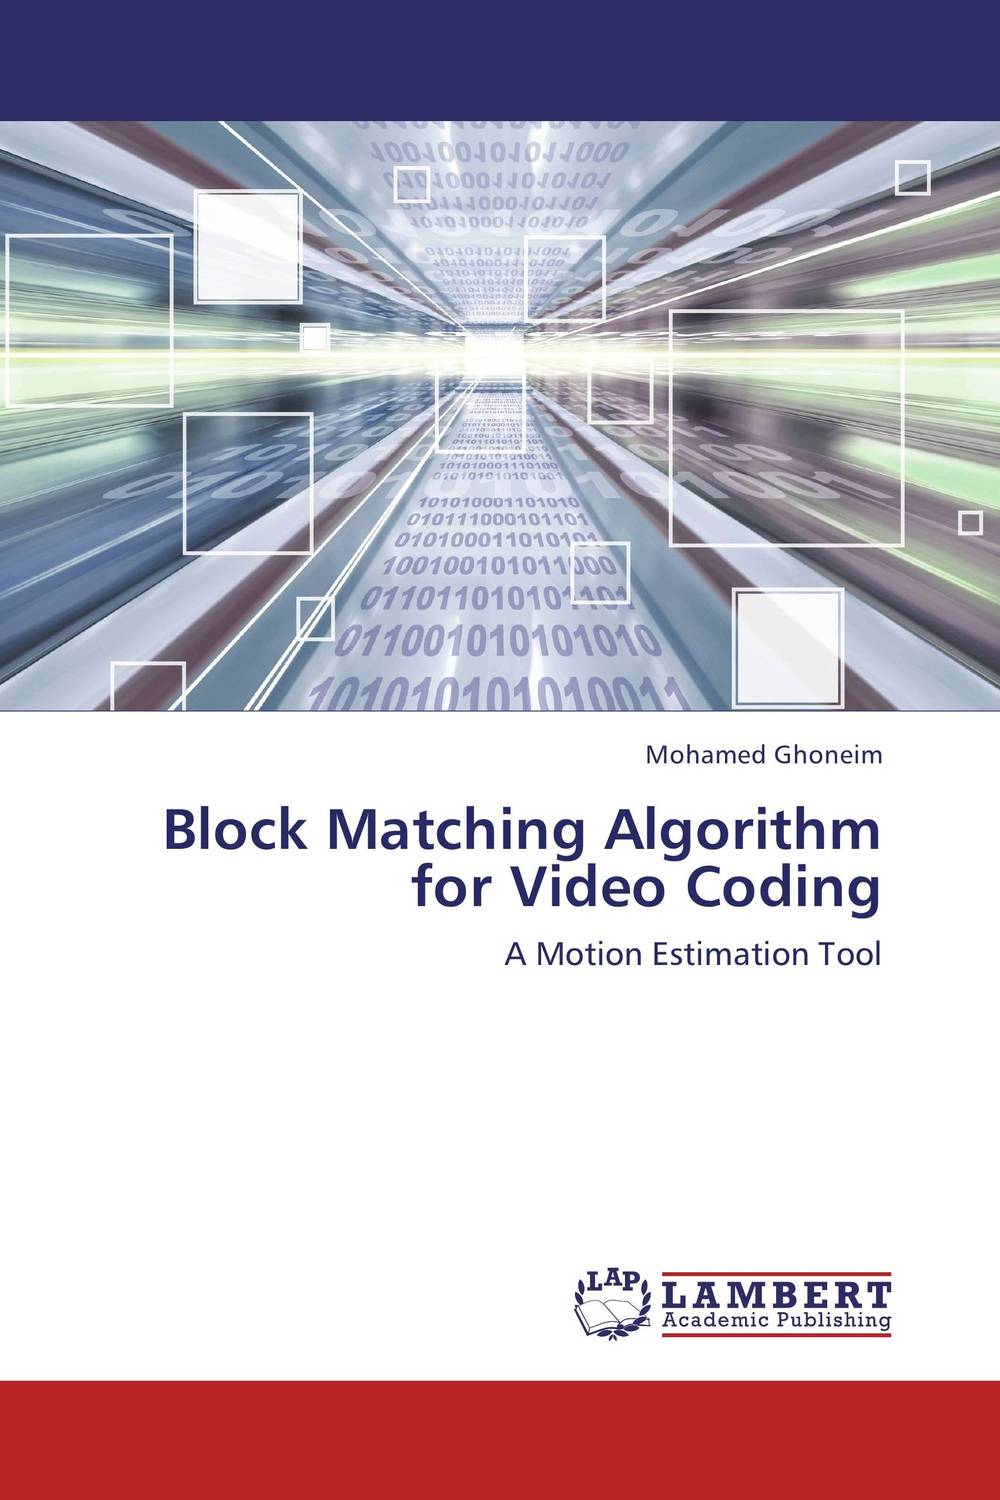 Block Matching Algorithm for Video Coding optimal and efficient motion planning of redundant robot manipulators